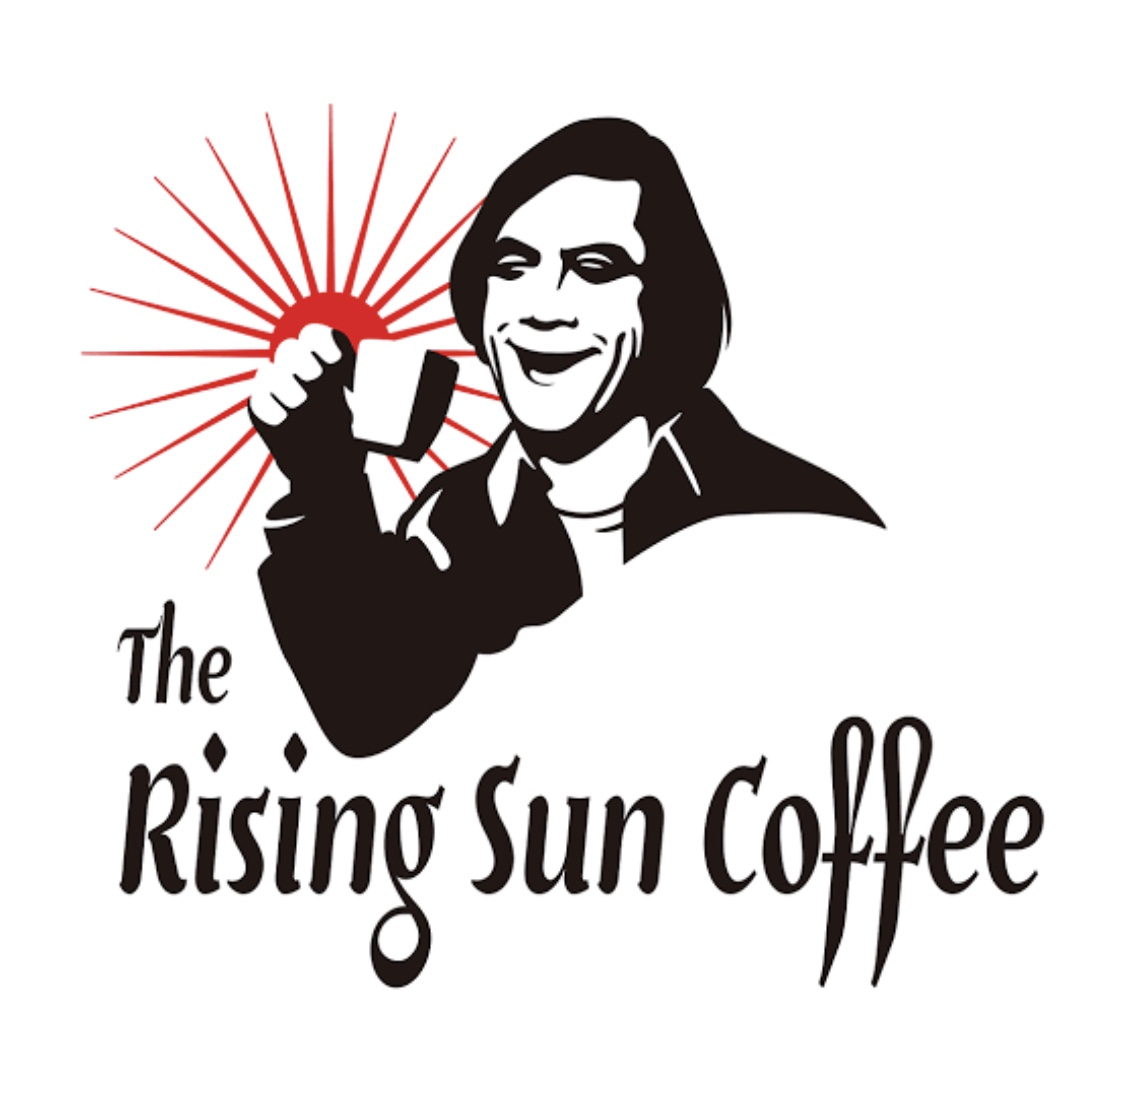 the rising sun coffee